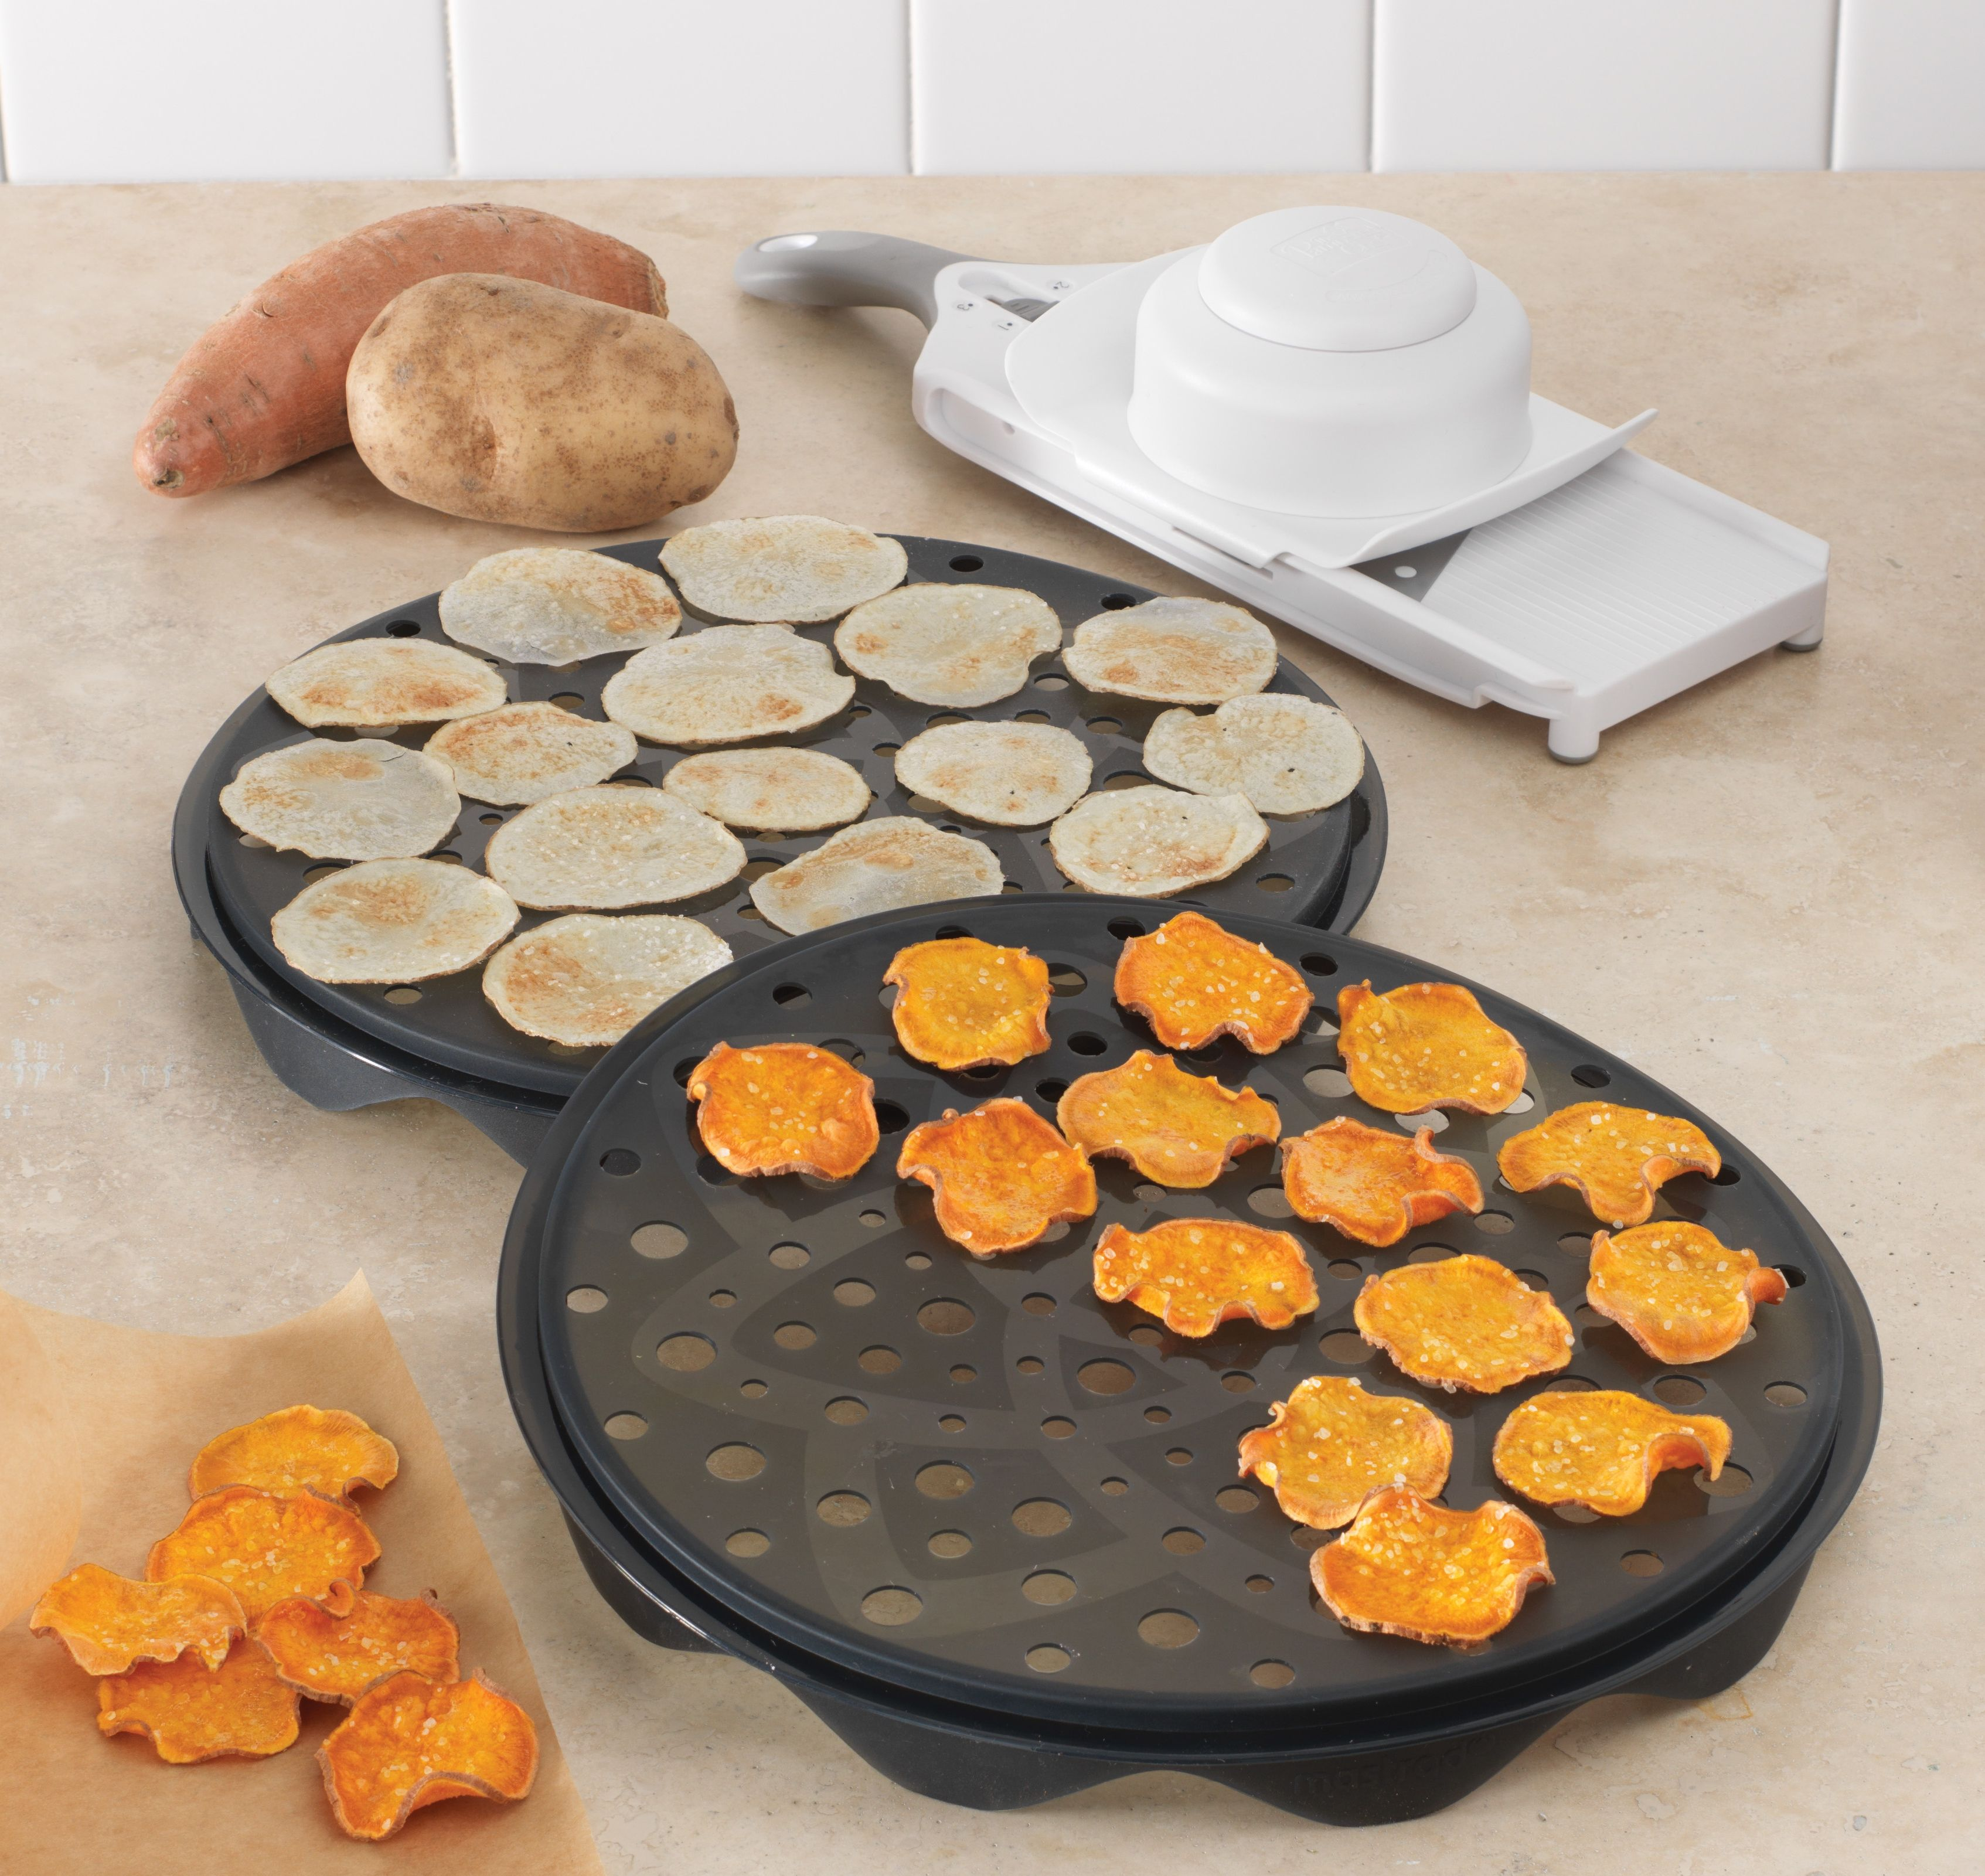 how to make your own potato chips in oven